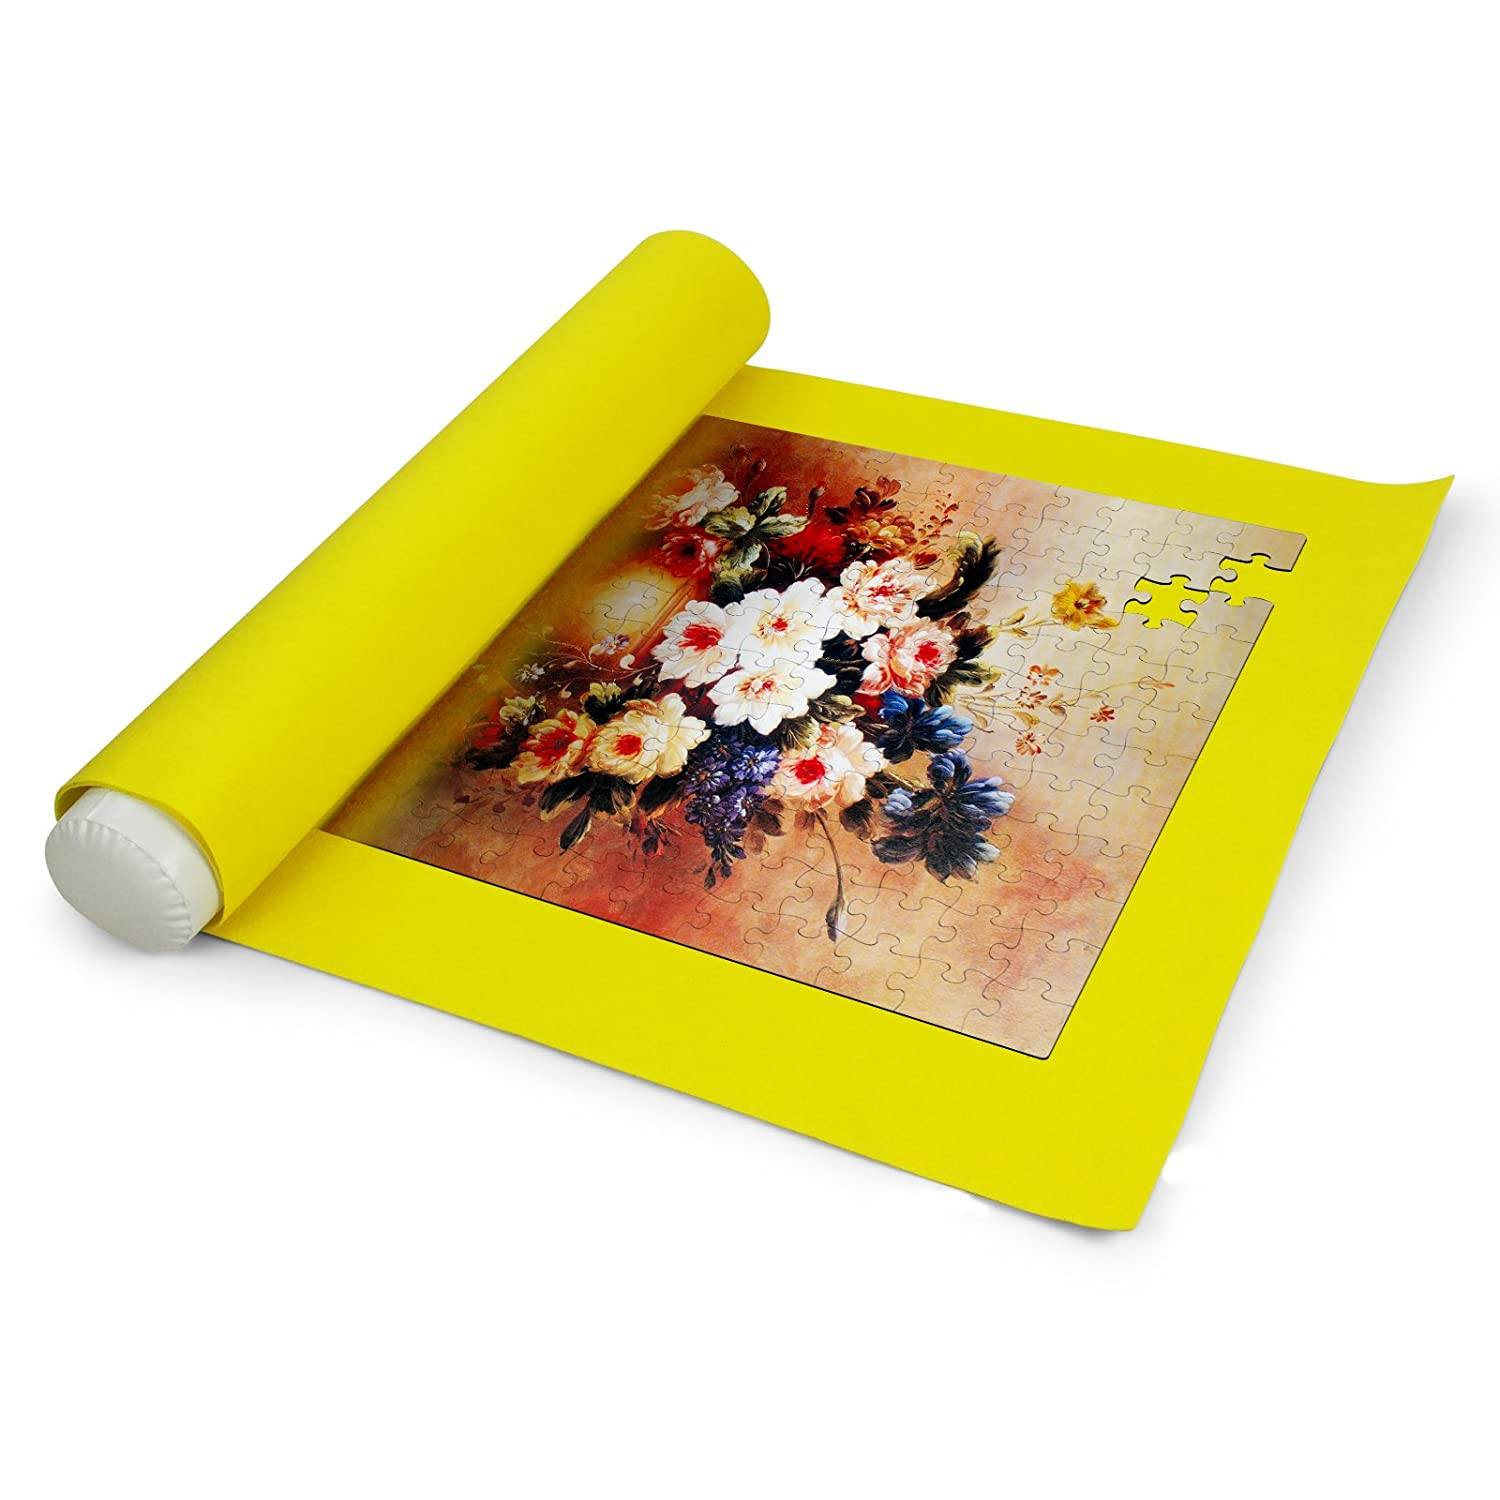 Sinoguo Yellow Felt Mat for Puzzle Storage Puzzles Saver No Folded Creases Environmentally Friendly Materials a Good Puzzle Accessories for Jigsaw Puzzle Player M Yellow